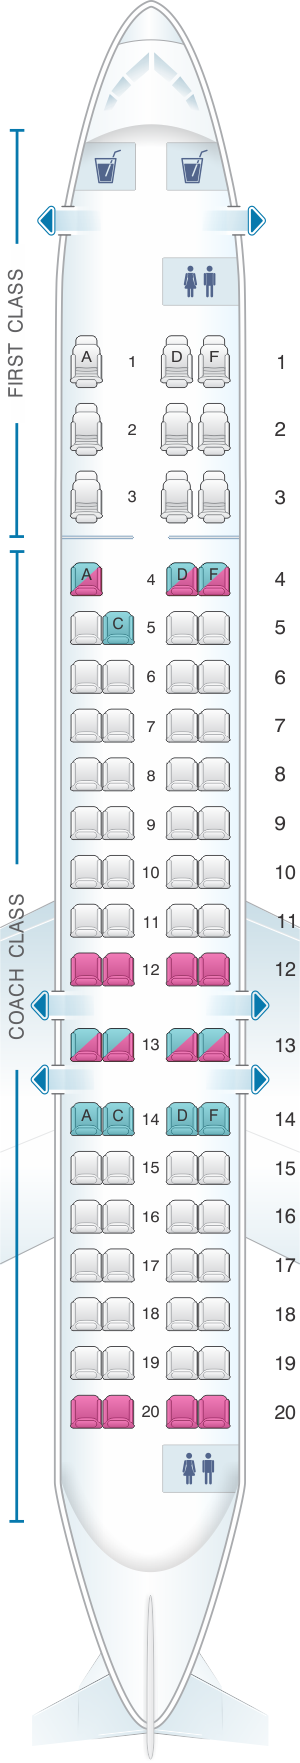 Seat map for US Airways Bombardier Canadair CRJ 900 76pax